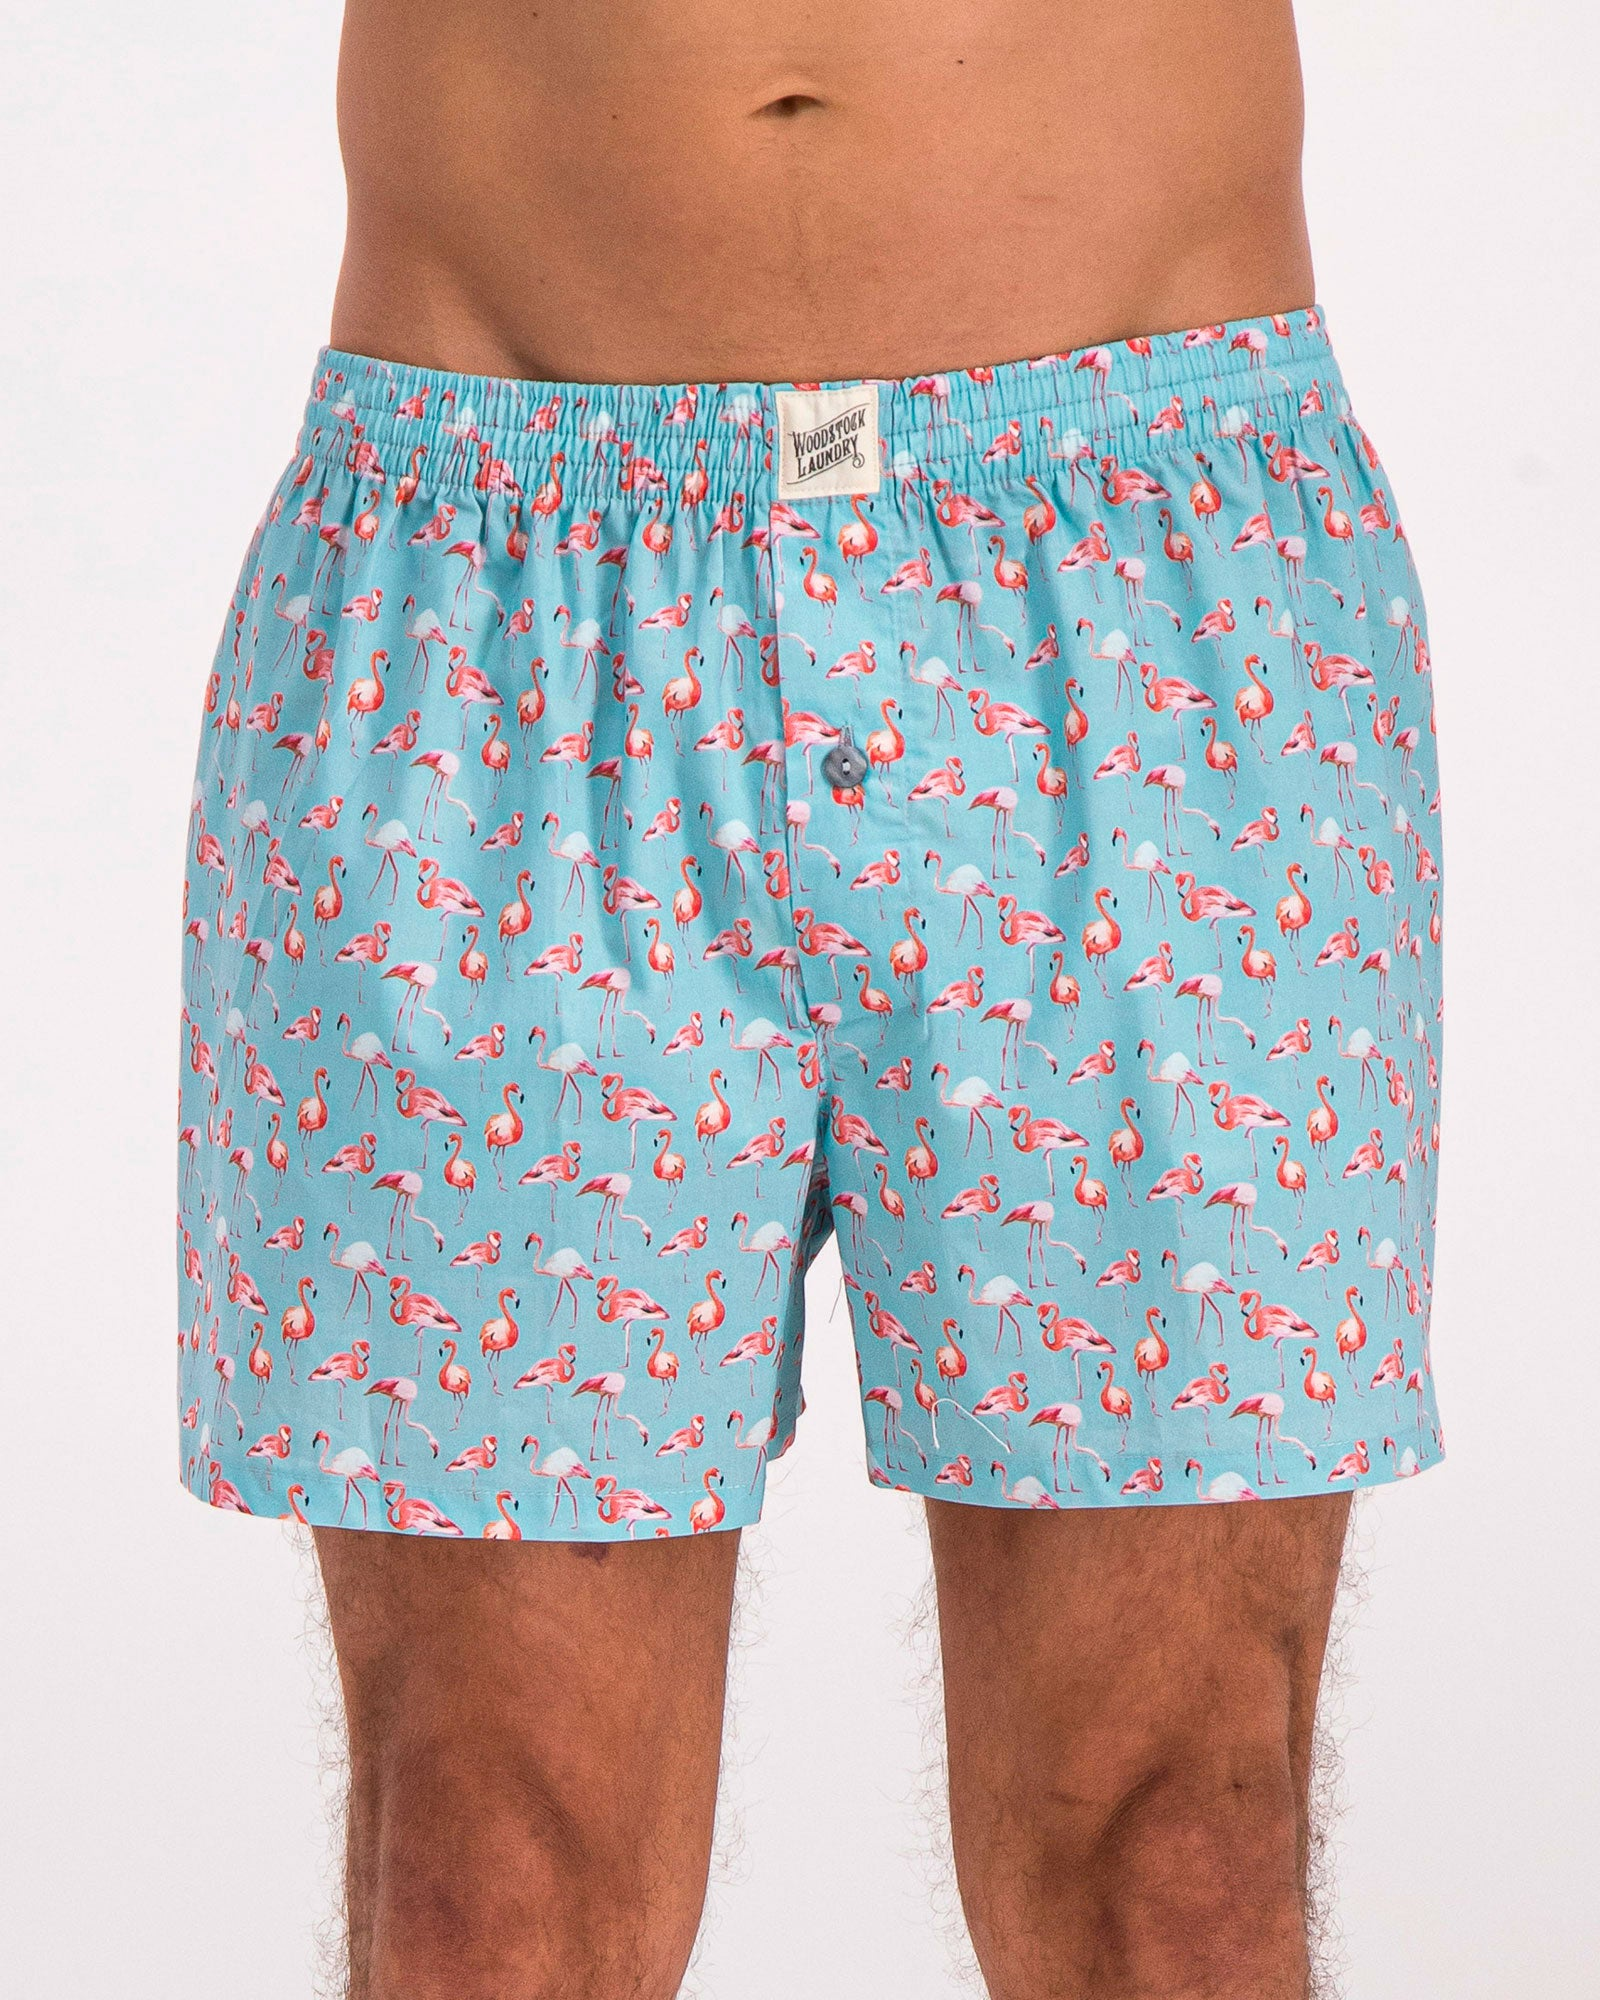 Mens Boxer Shorts Flamenco Flamingo Blue - Woodstock Laundry